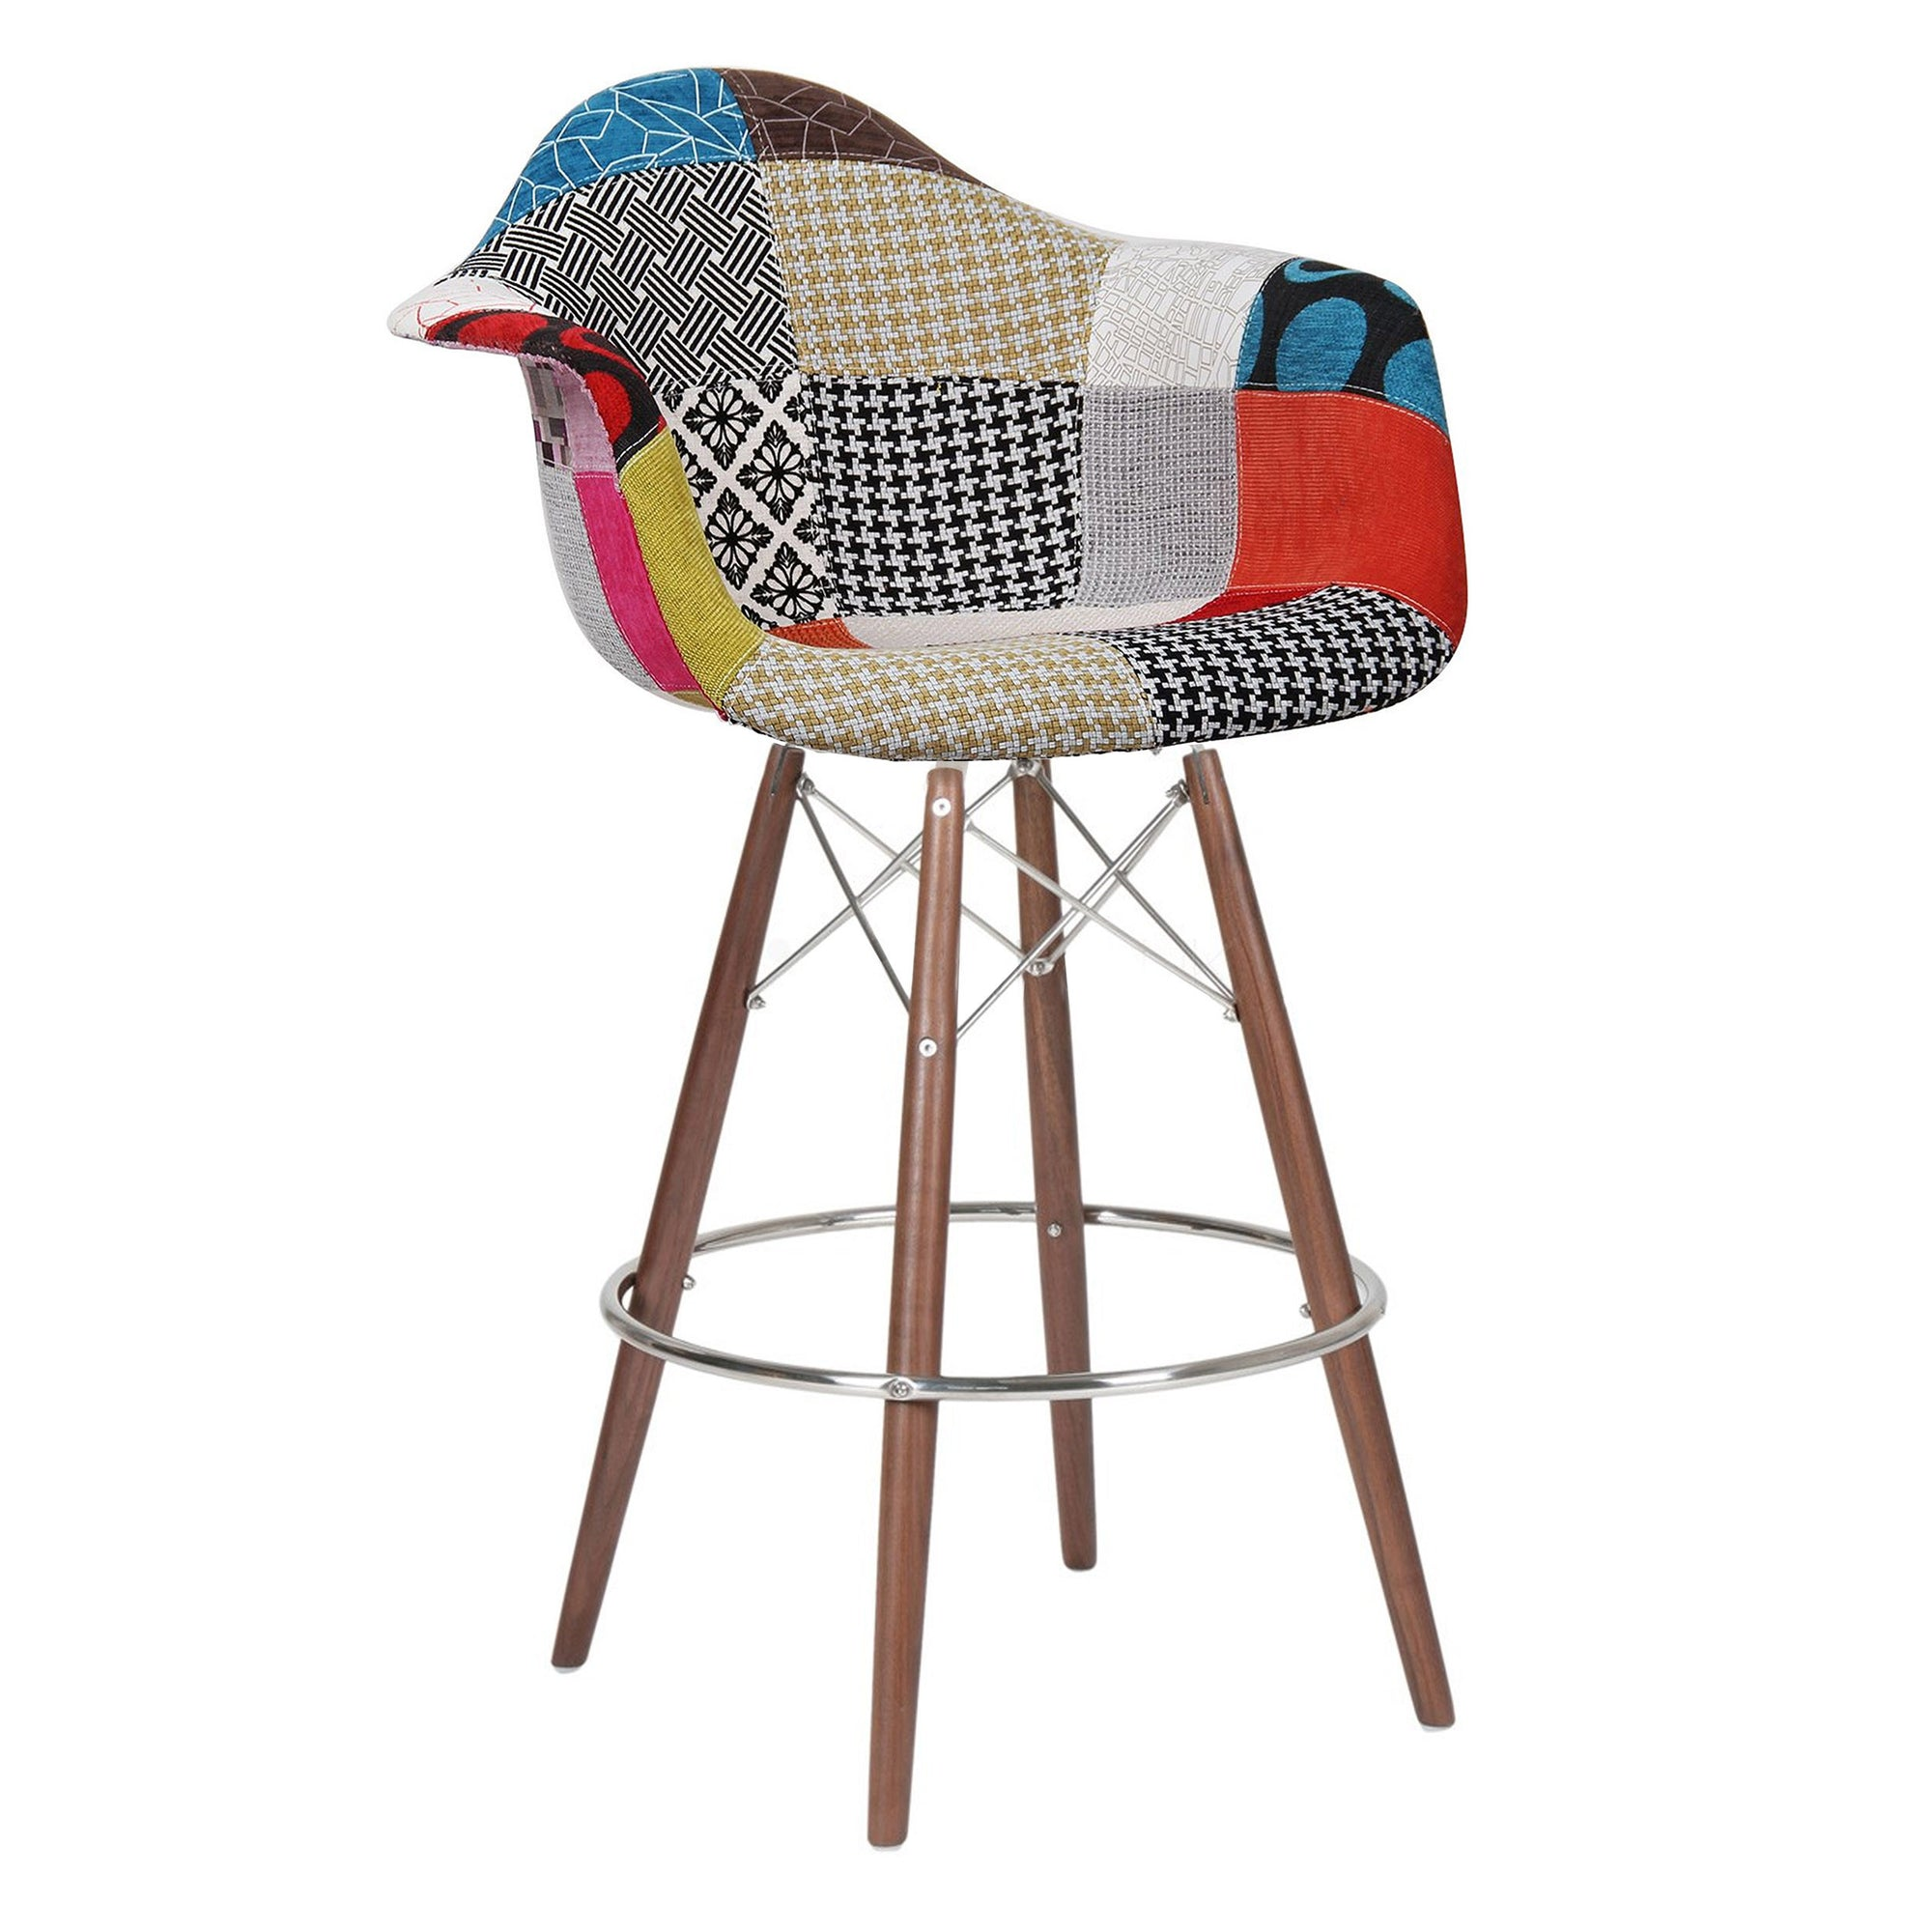 Bar Chair-Fabric- MSB0011F-W -  كرسي مرتفع - قماش - Shop Online Furniture and Home Decor Store in Dubai, UAE at ebarza